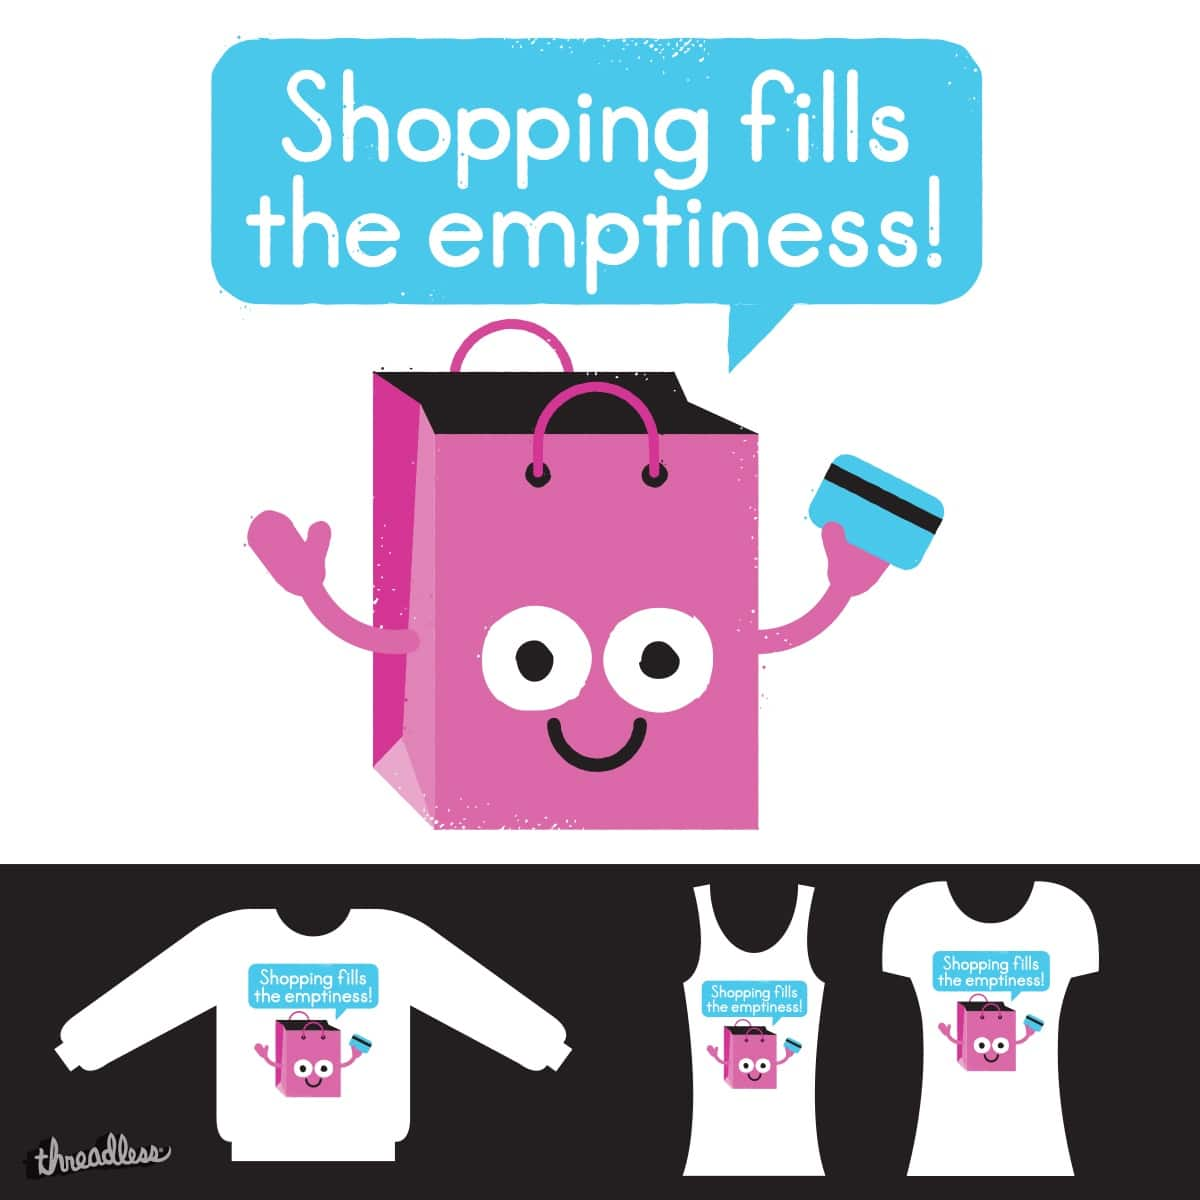 Retail Therapy by DRO72 on Threadless